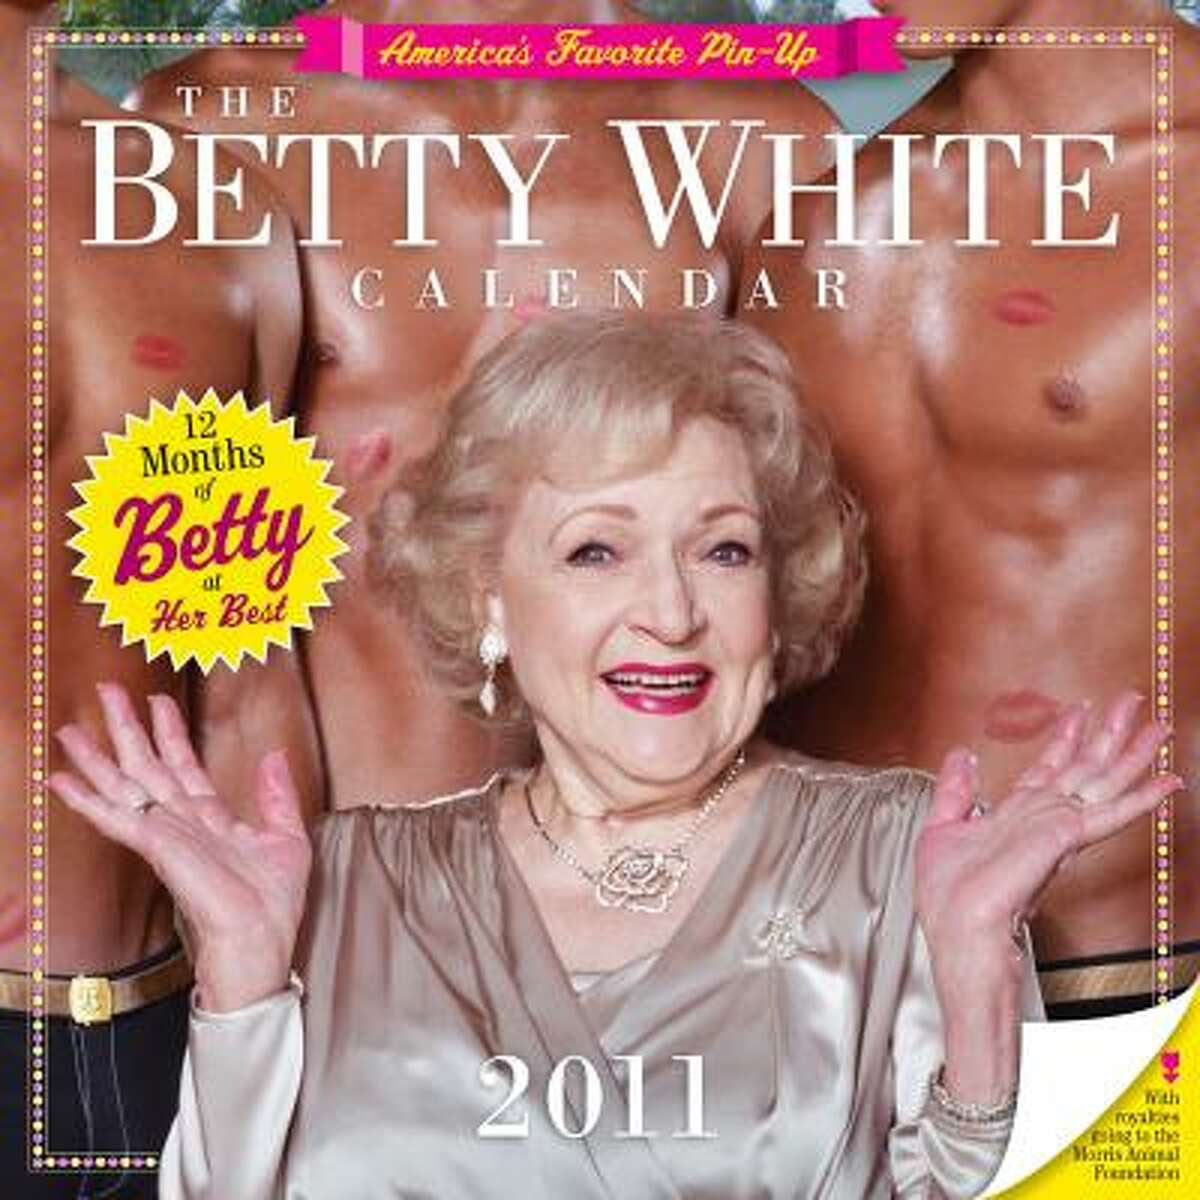 Actress Betty White is shown on the cover of The Betty White Calender 2011, which will be available in September.